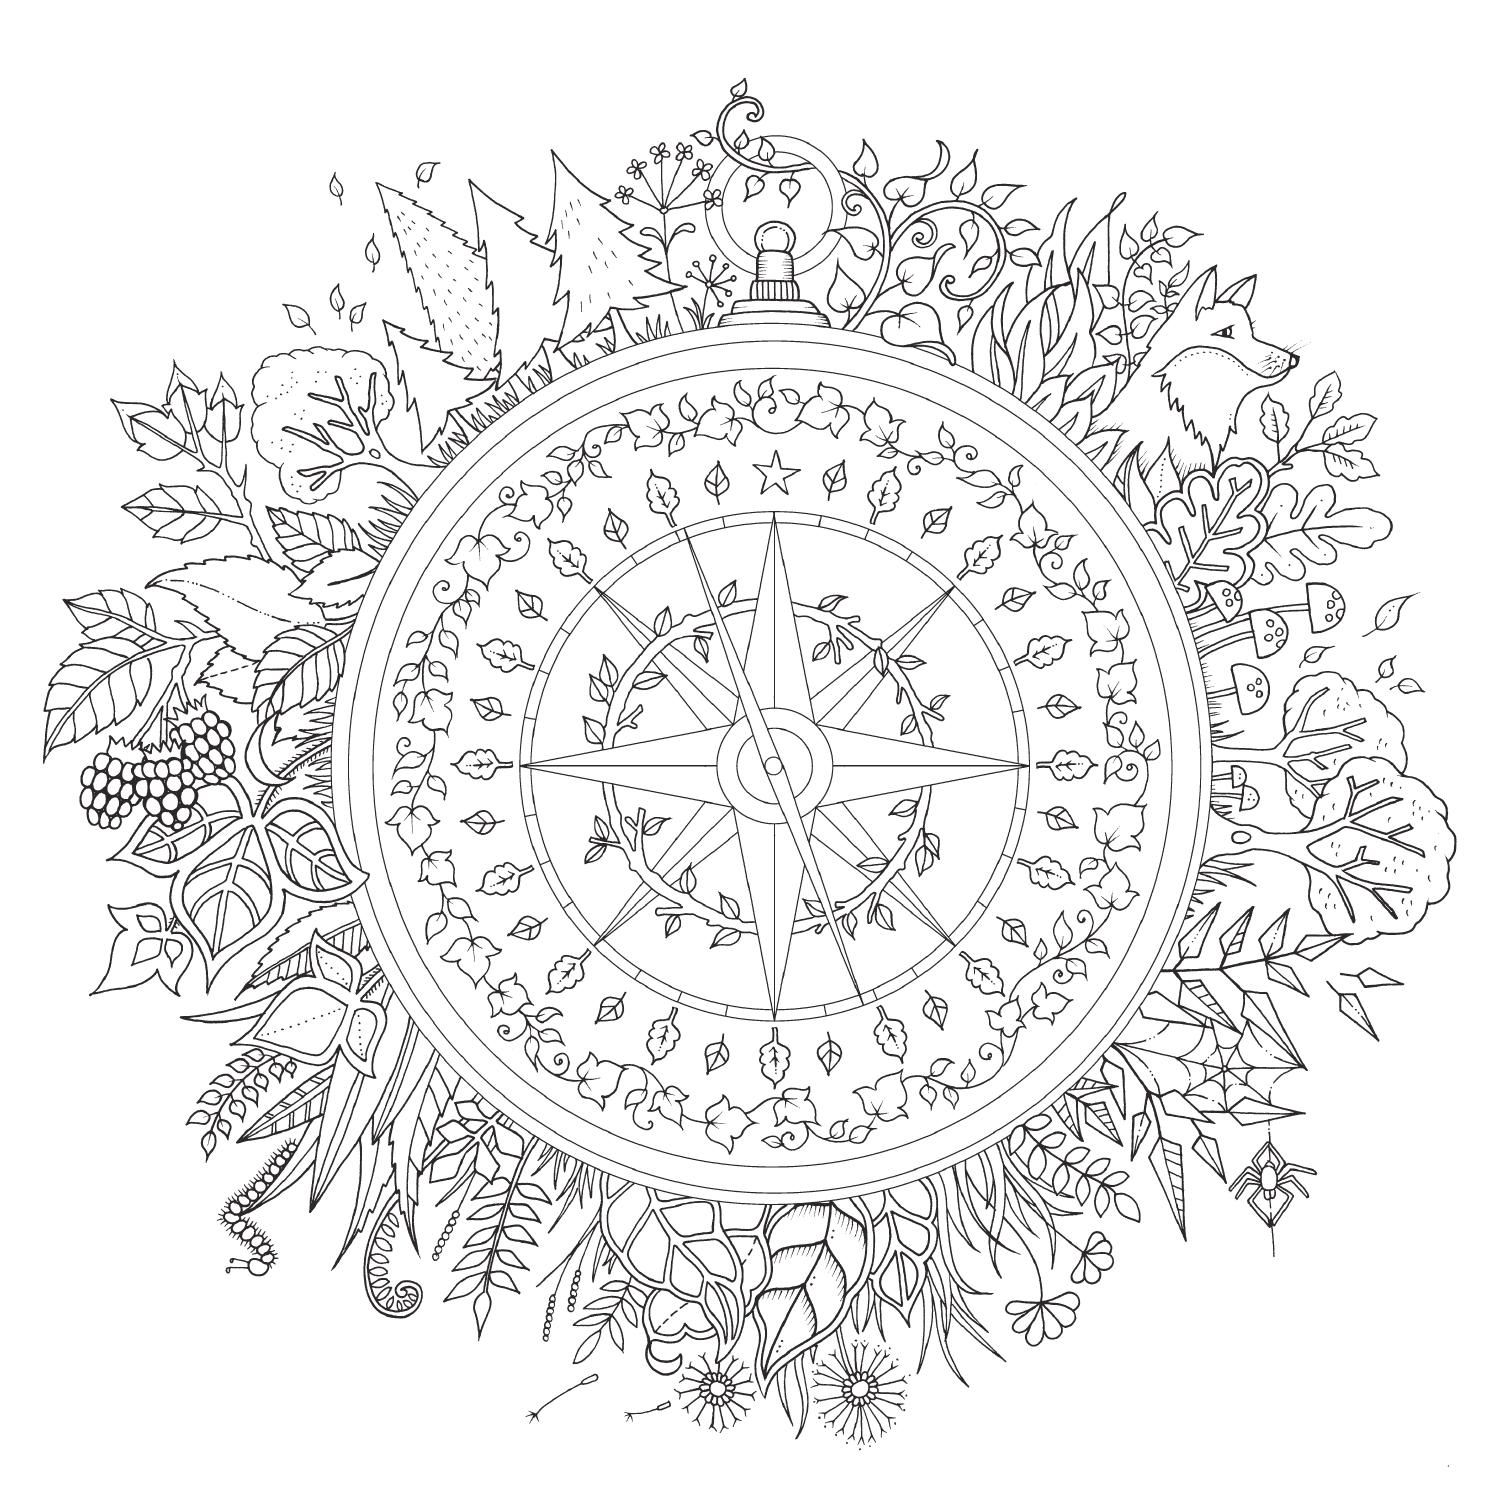 johanna coloring pages - photo#10